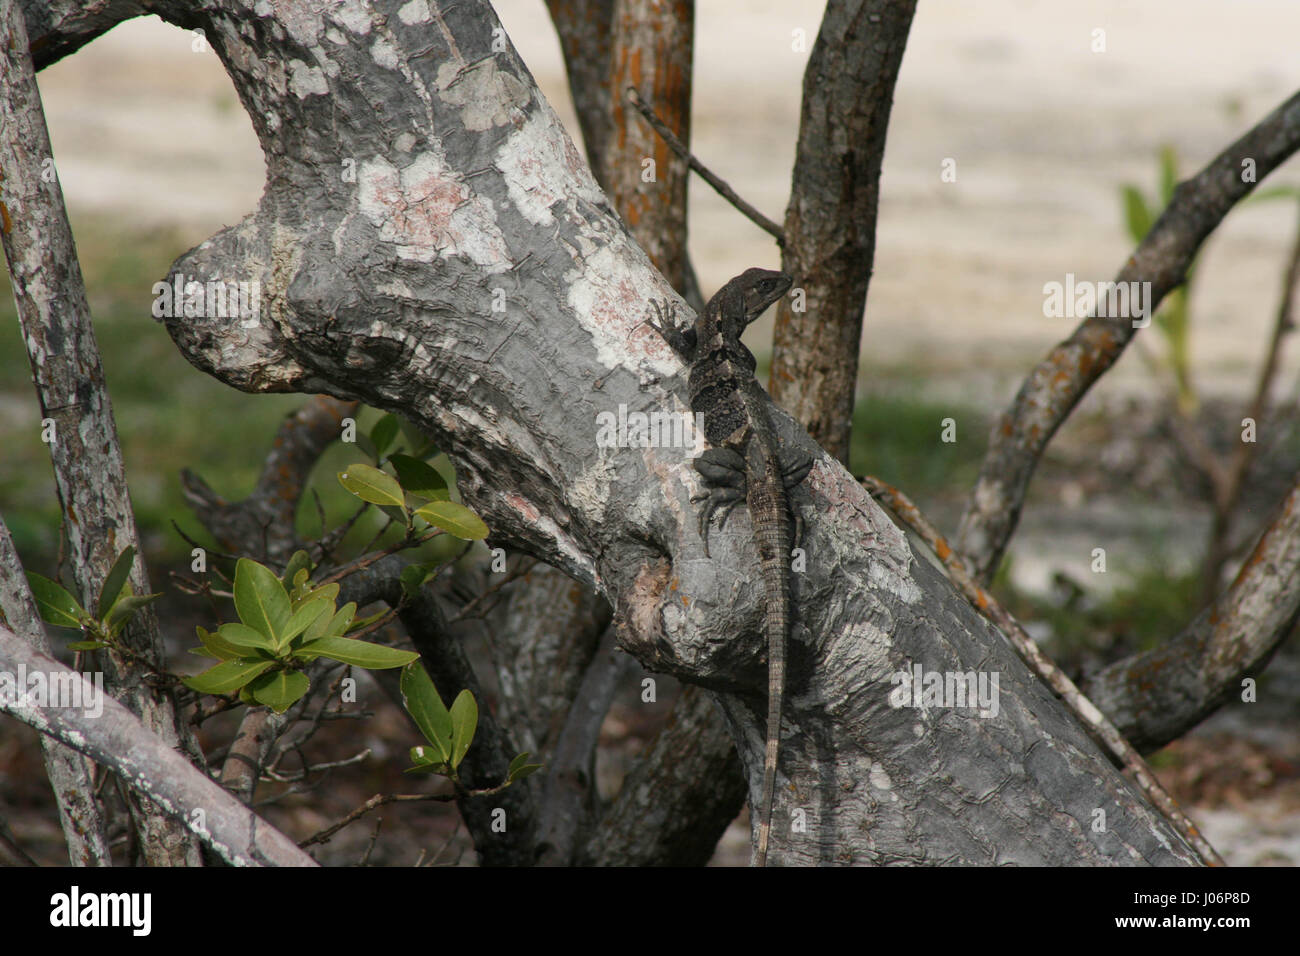 Lizard sunning on mangrove tree in  Belize - Stock Image